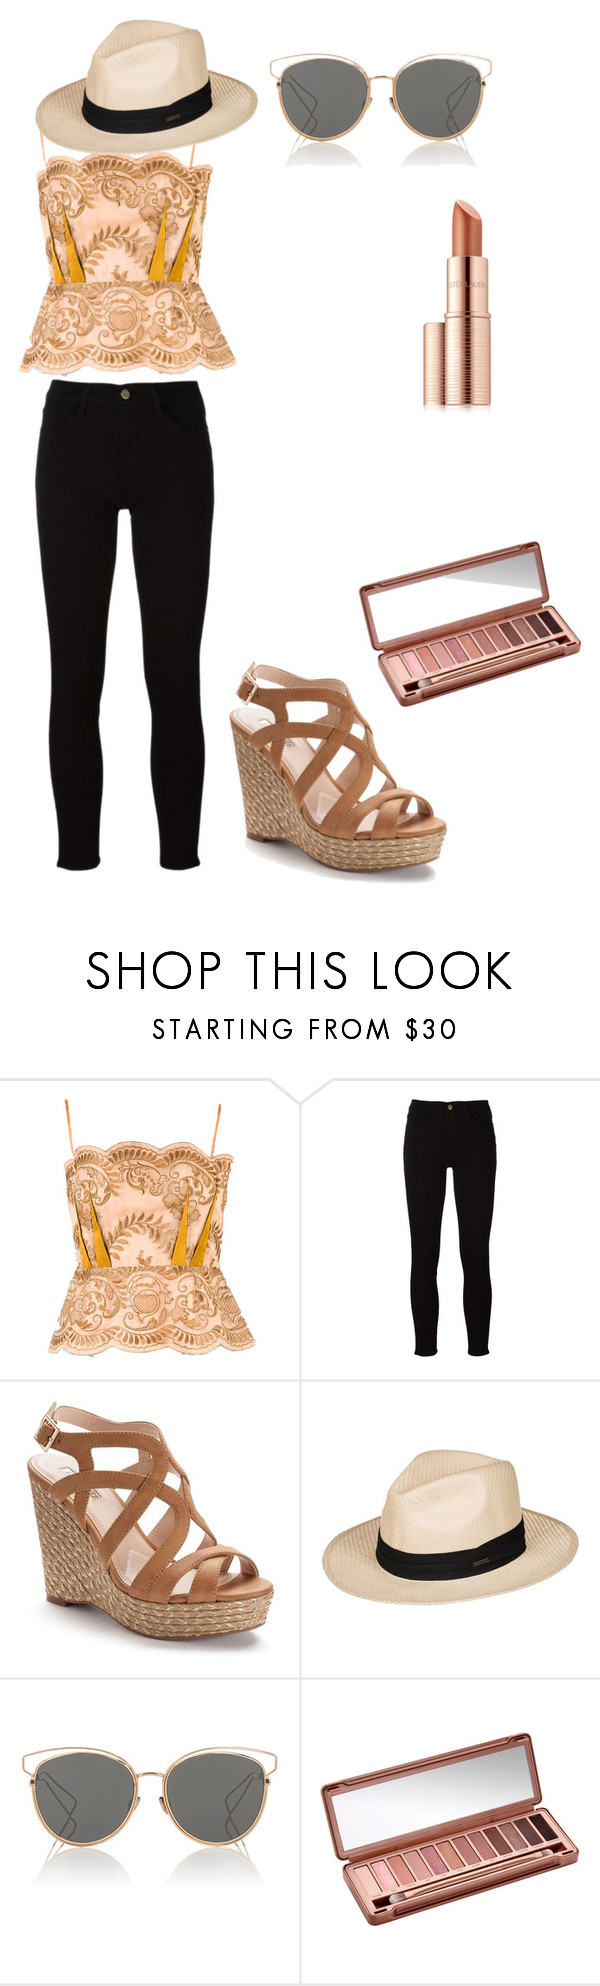 """""""peachy"""" by gretchiebear on Polyvore featuring STELLA McCARTNEY, Frame, Jennifer Lopez, Roxy, Christian Dior, Urban Decay and Estée Lauder"""